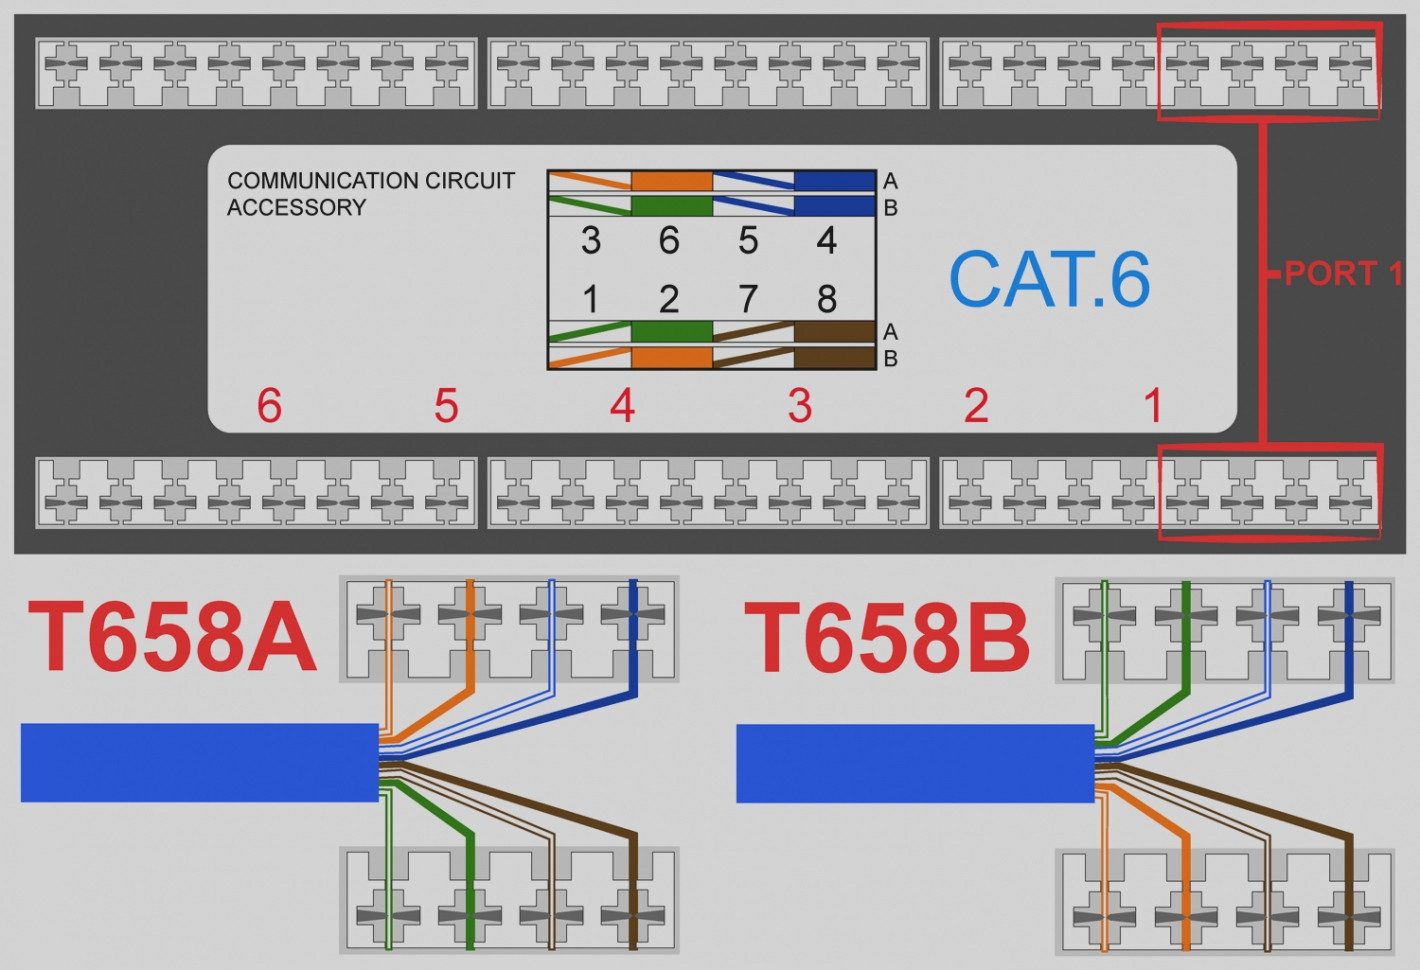 cat6 socket wiring diagram Collection-cat 6 wiring diagram wall jack Download Beautiful Surface Mount Data Jack Wiring Diagram Cat 12-s